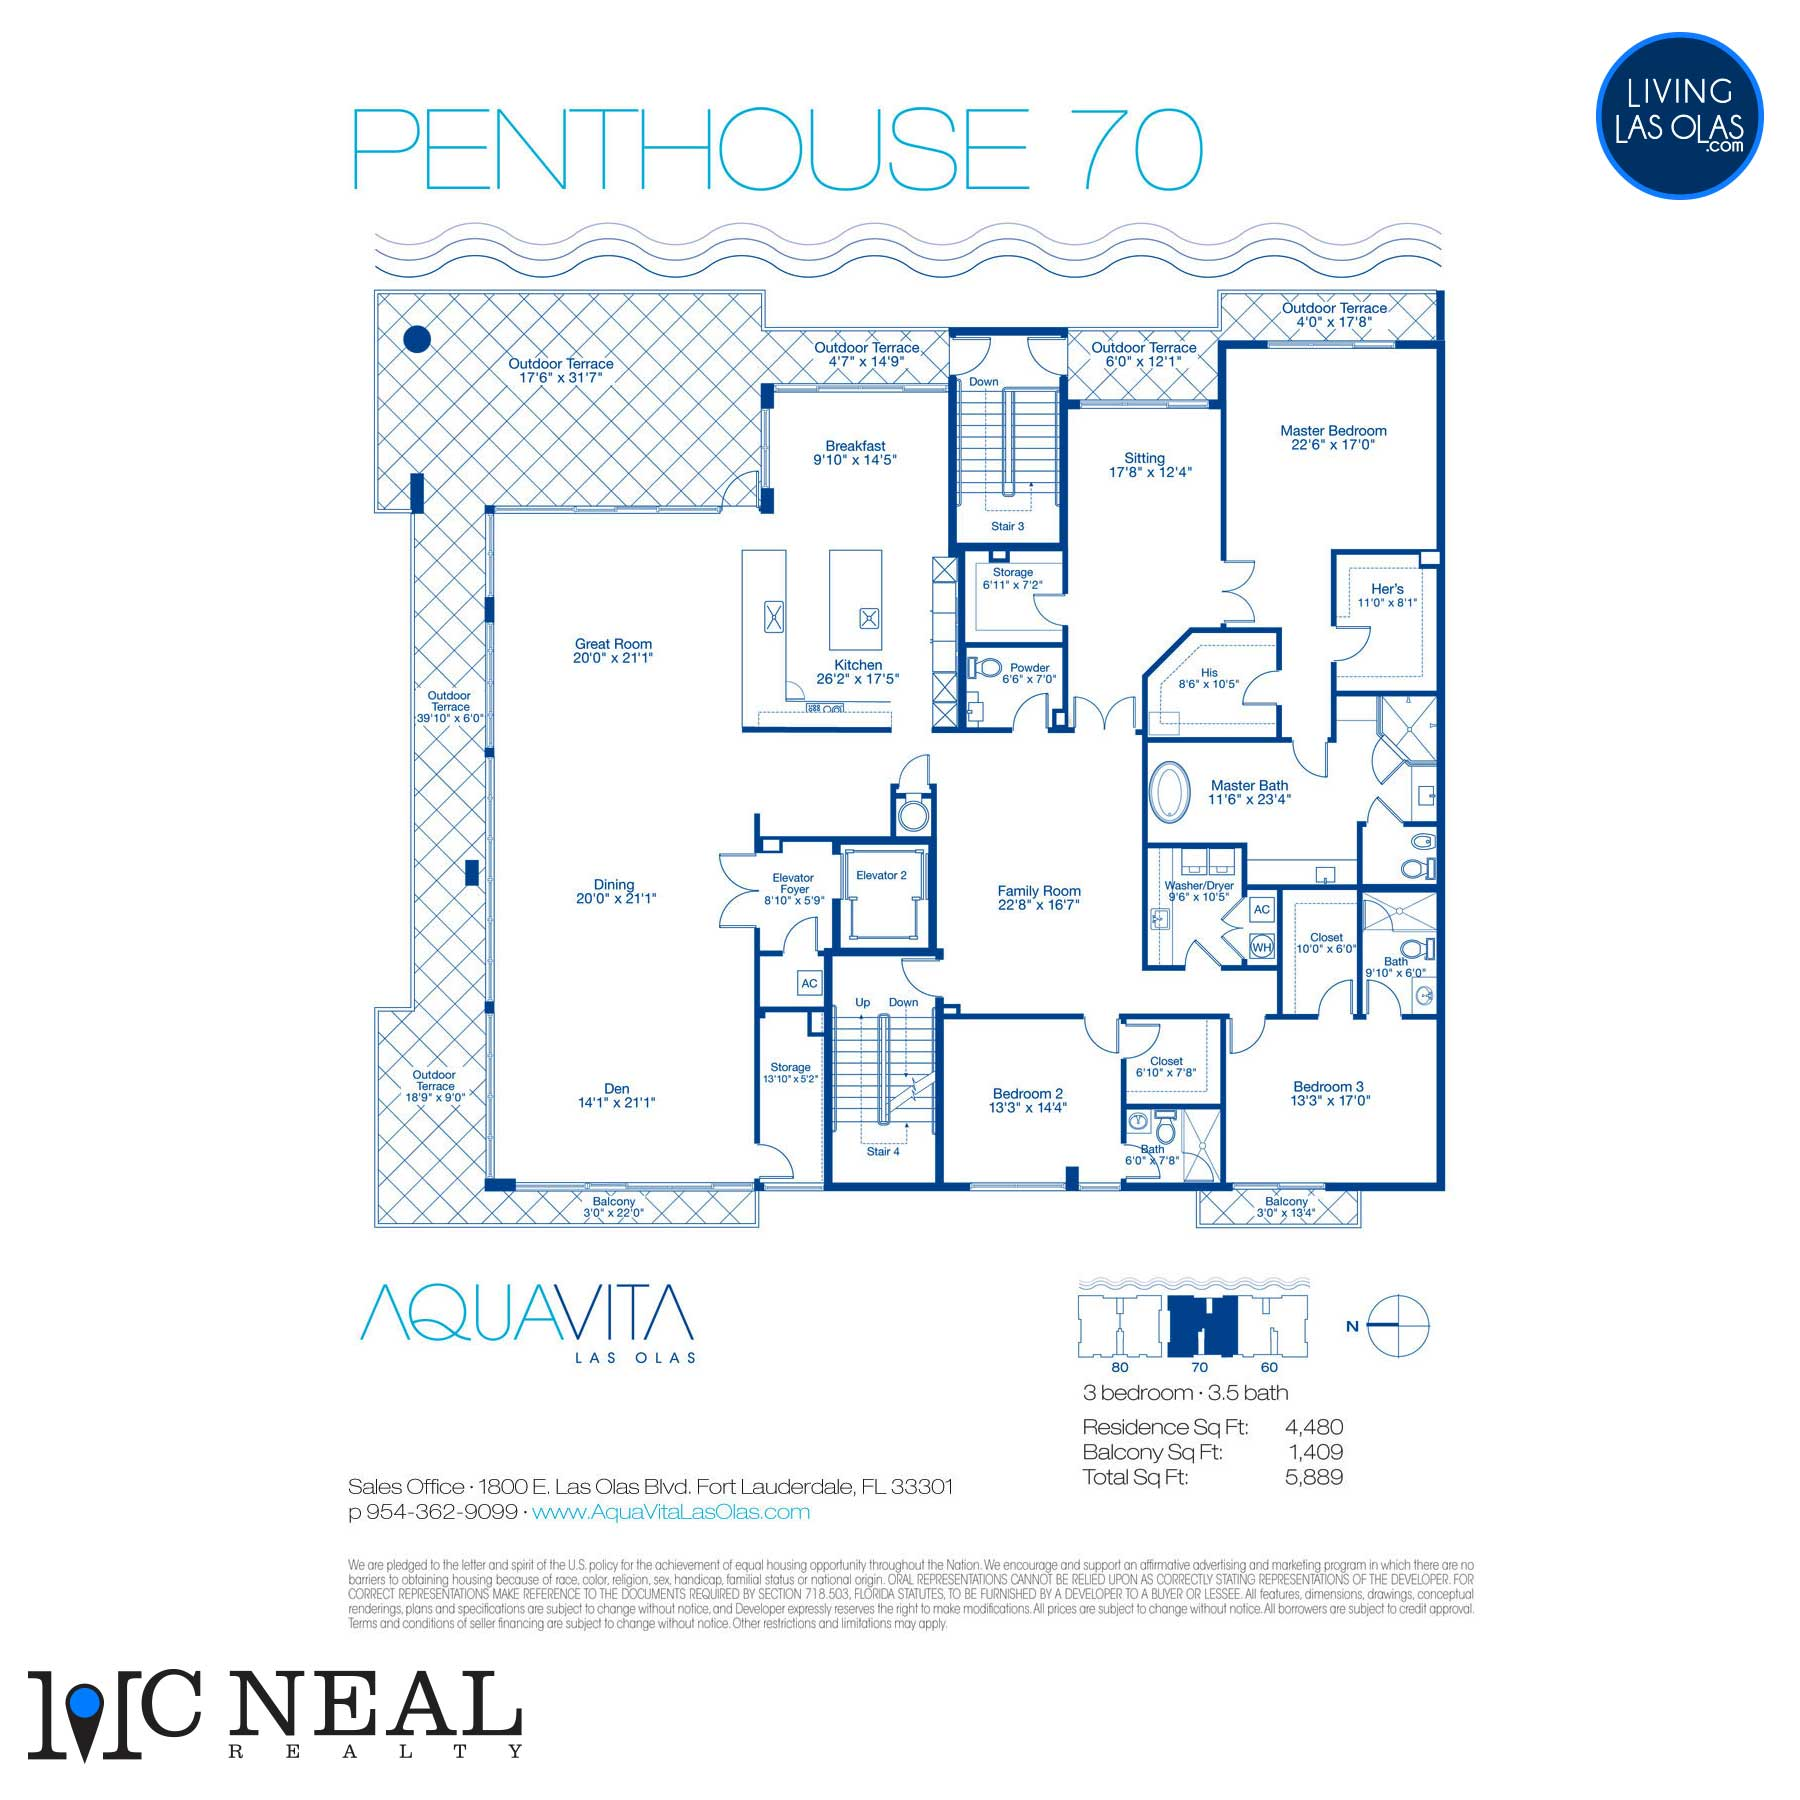 AquaVita Las Olas Floor Plans Penthouse 70